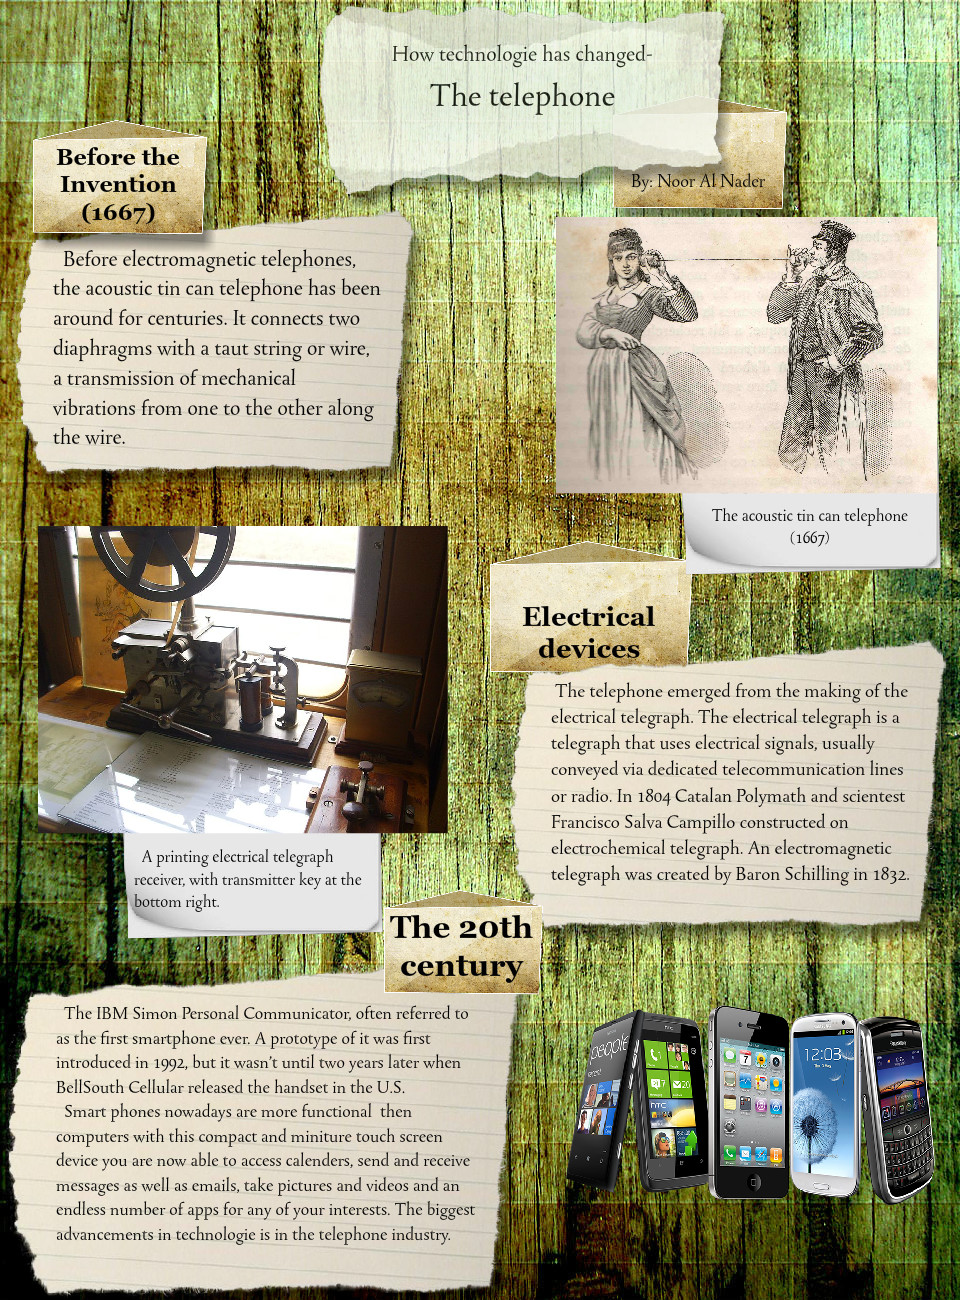 How technologie has changed- The Telephone